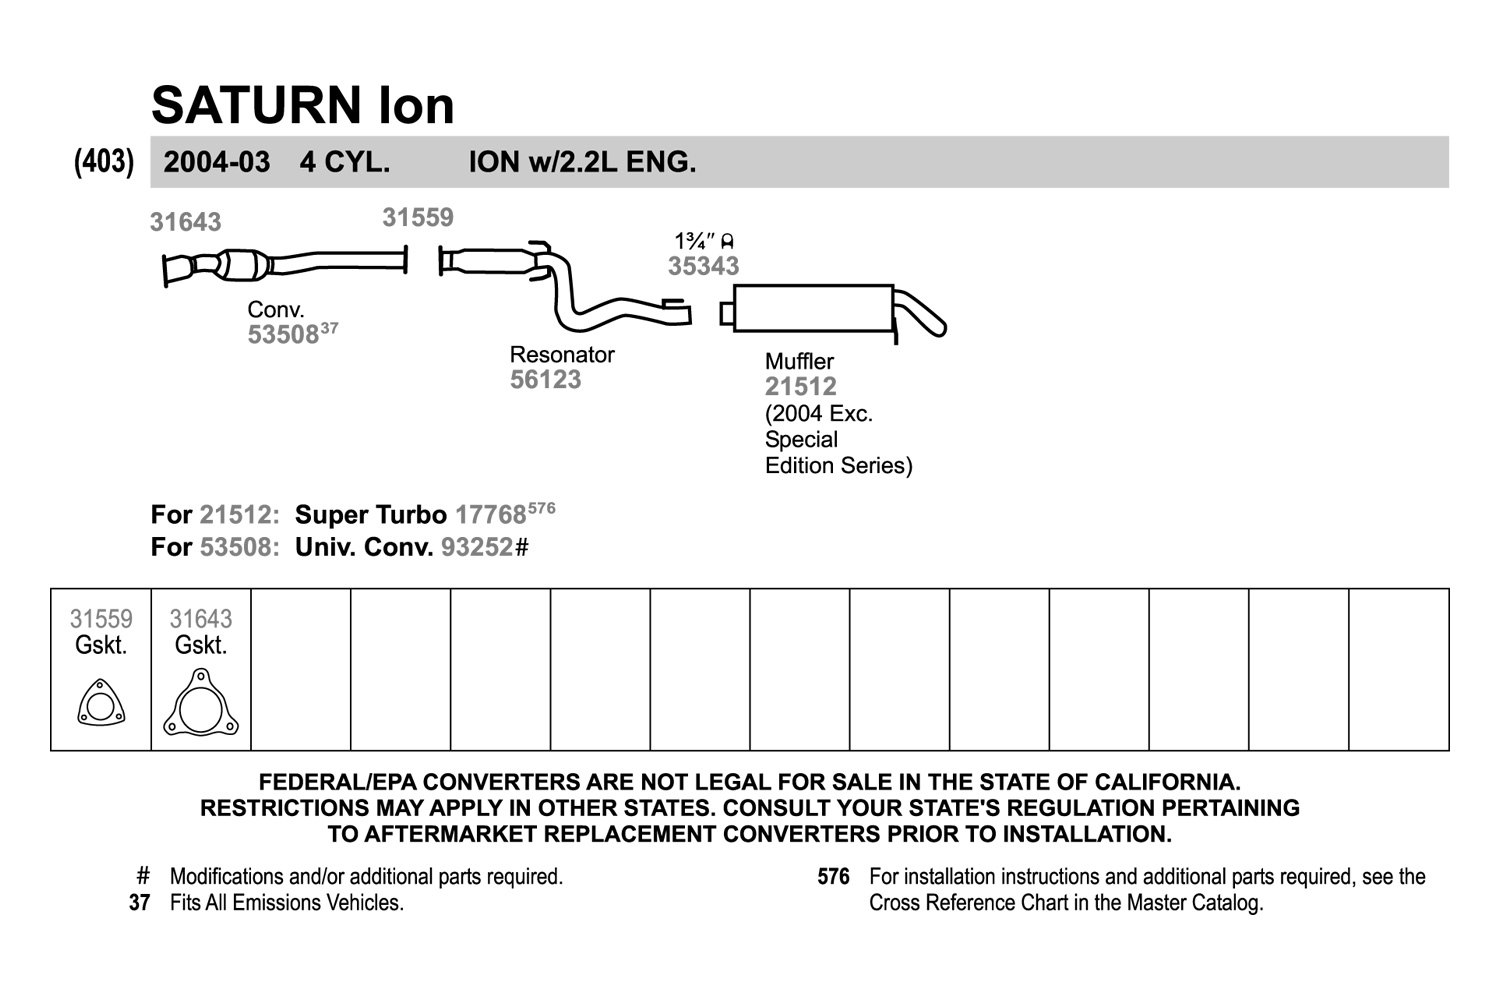 walker saturn ion 2004 replacement exhaust kit carid com rh carid com saturn l200 exhaust system diagram saturn l300 exhaust system diagram